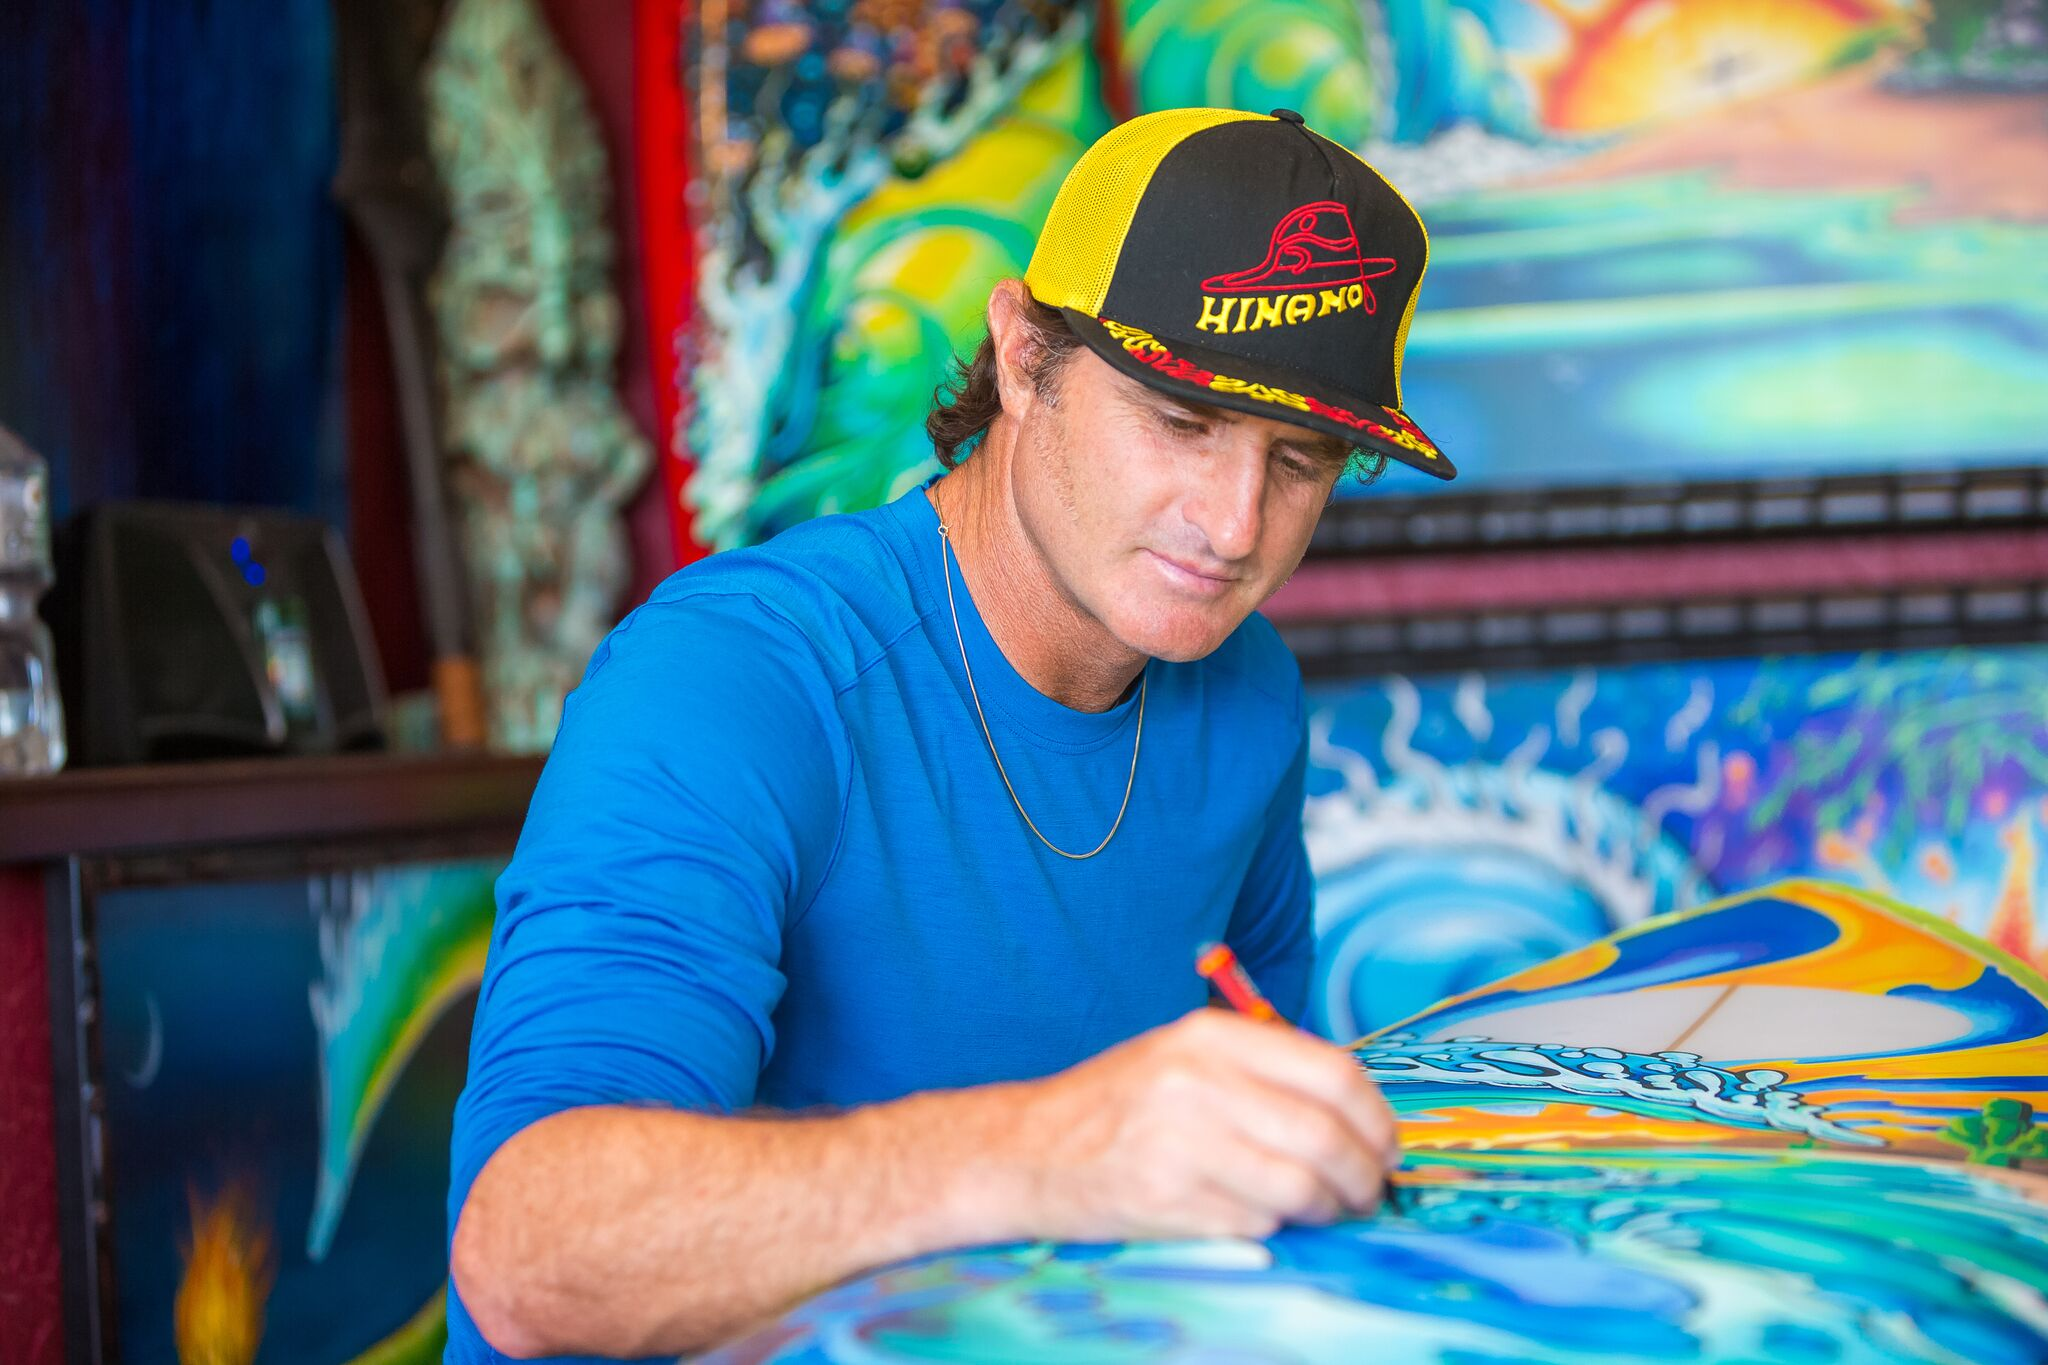 Drew Brophy painting Surfboard May 6 2014 PHOTO By Larry Beard Hinano preview